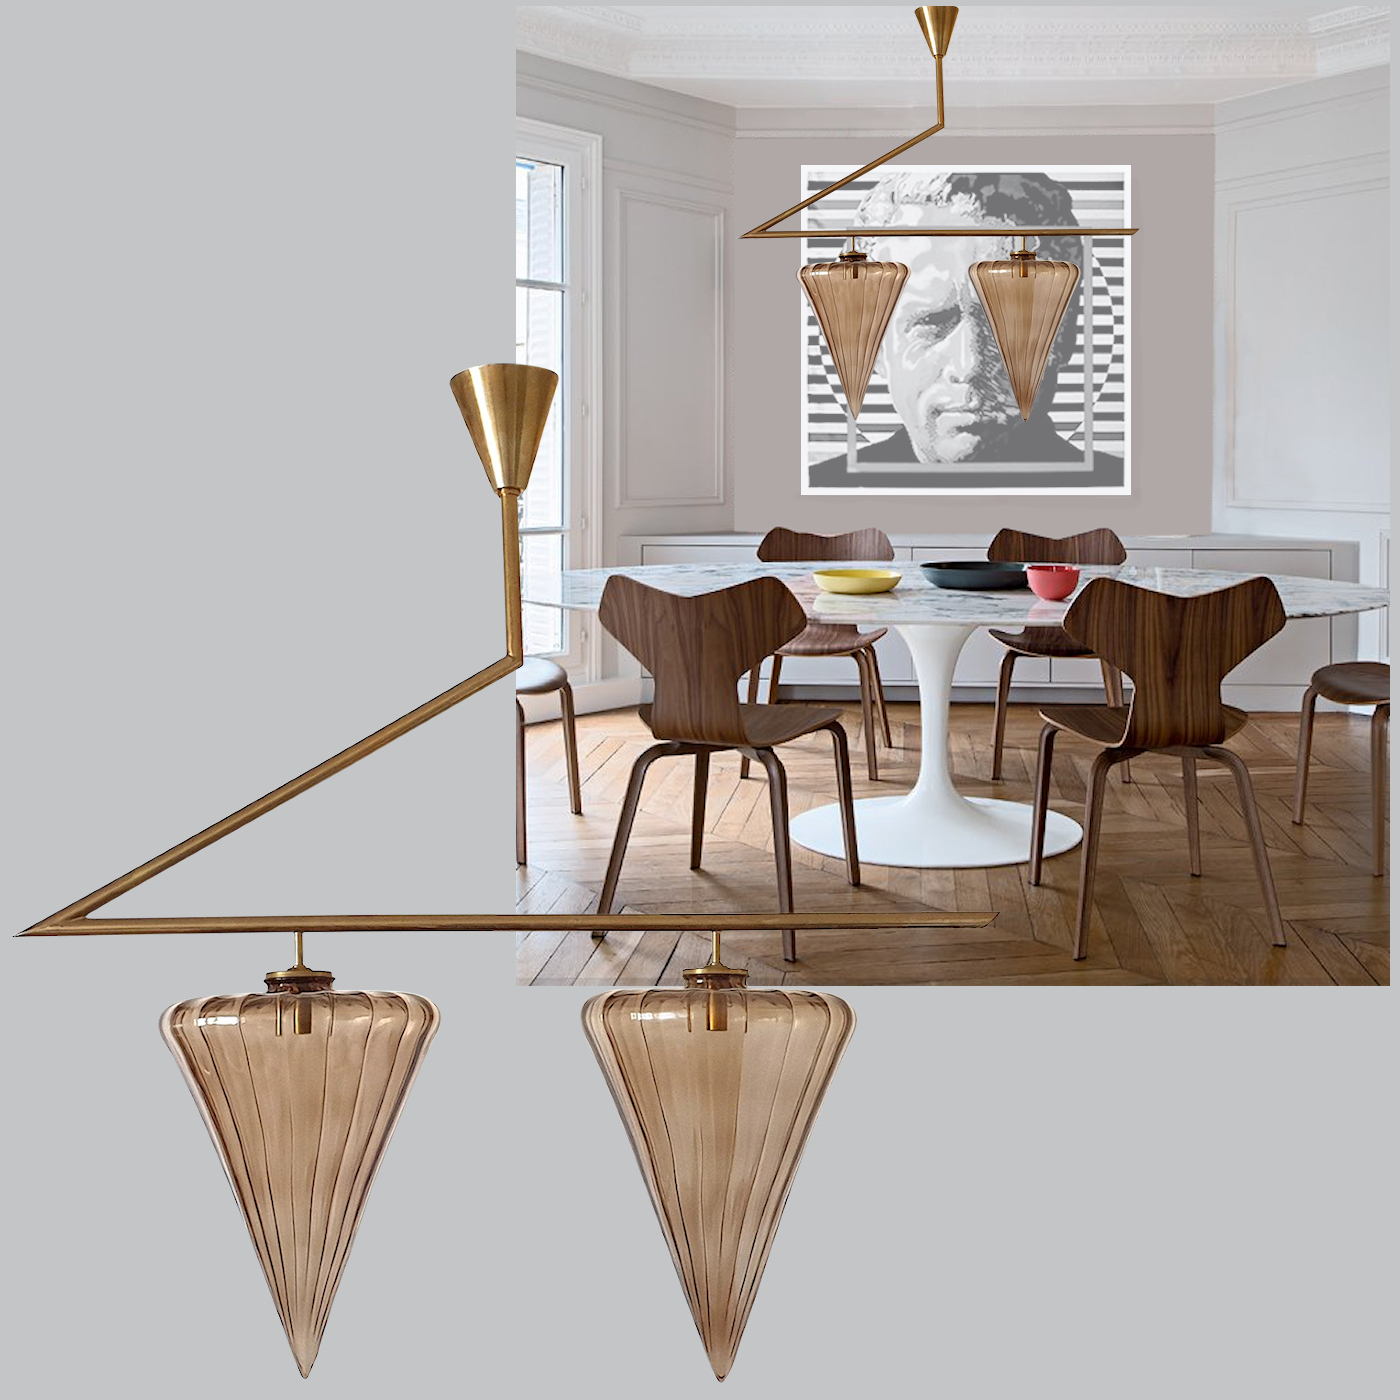 Mid Century Modern geometrical chandelier w/Murano glass attributed to Seguso